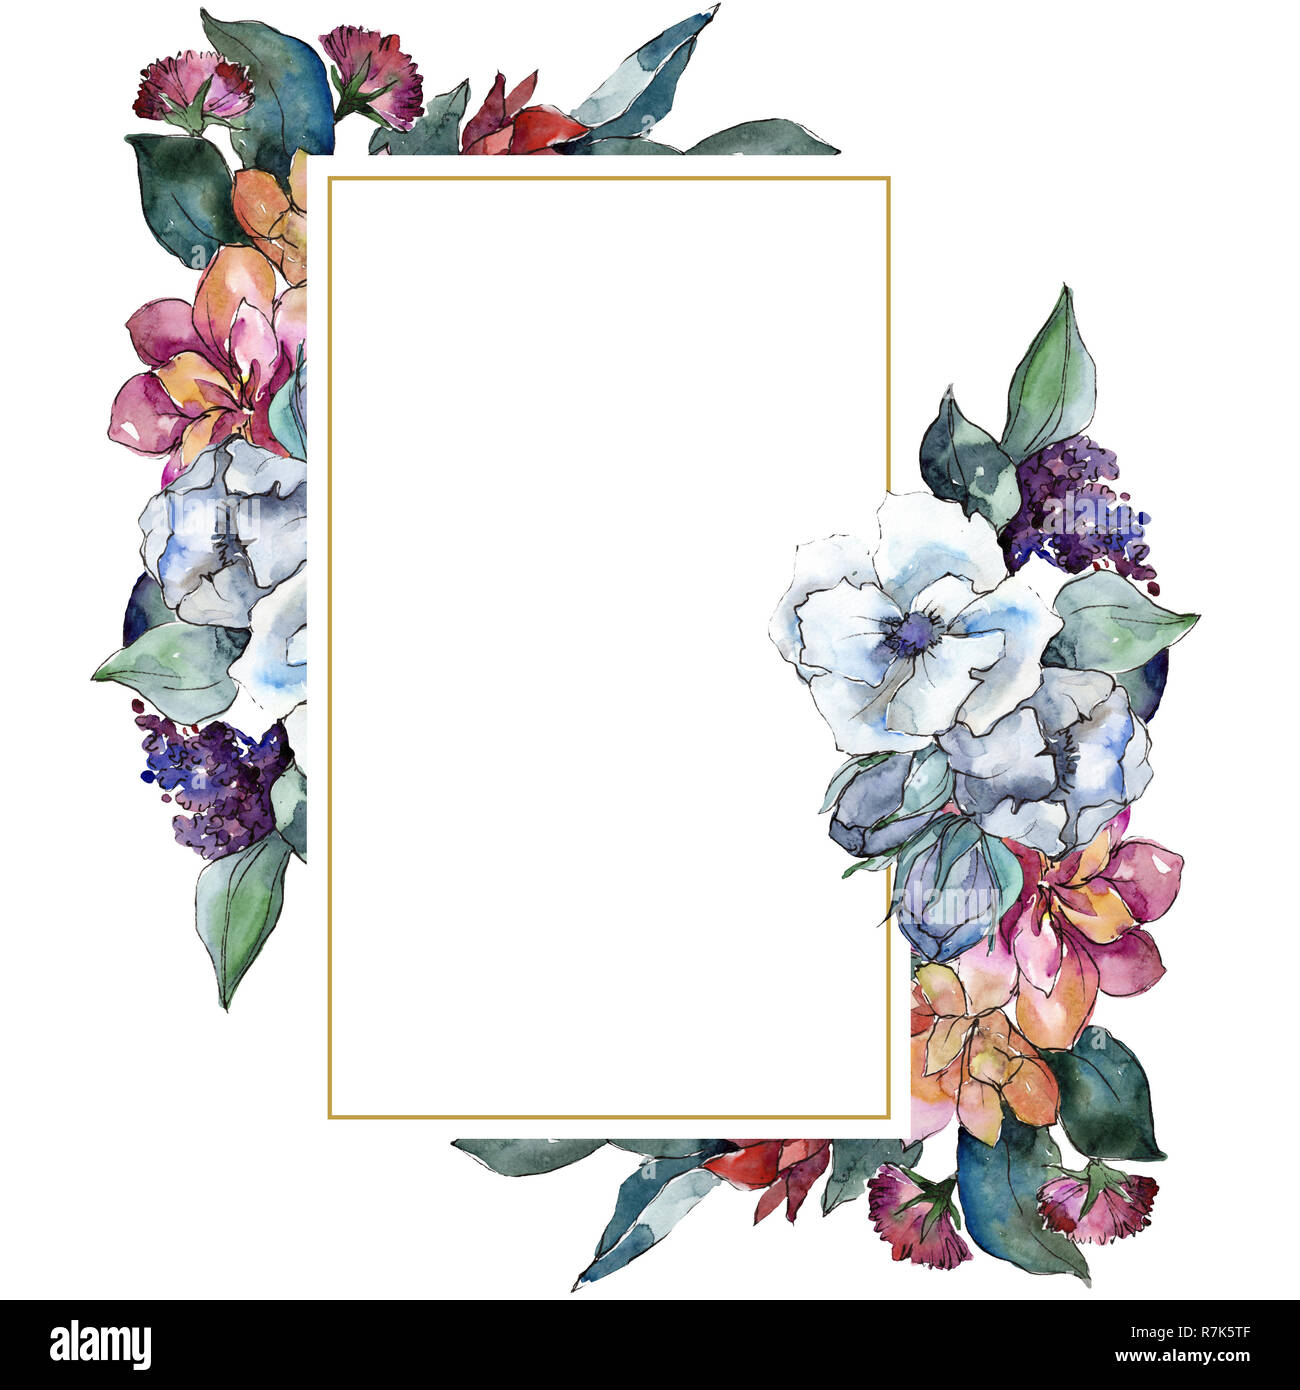 Bouquet Floral Flower Watercolor Background Illustration Set